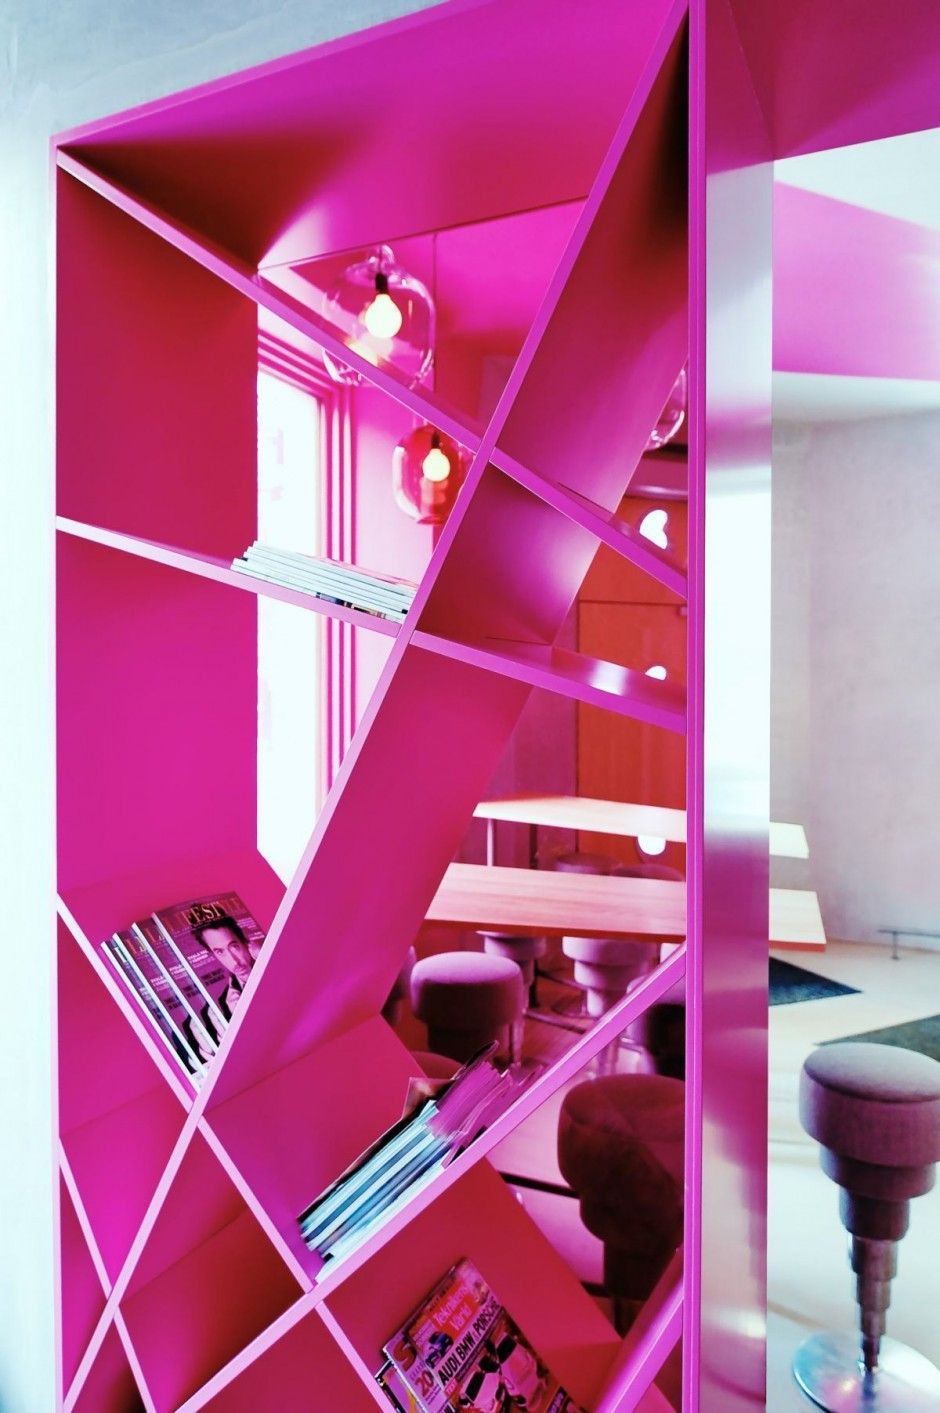 cafe foam colorful interior pink bookcase | bakery/event palnning